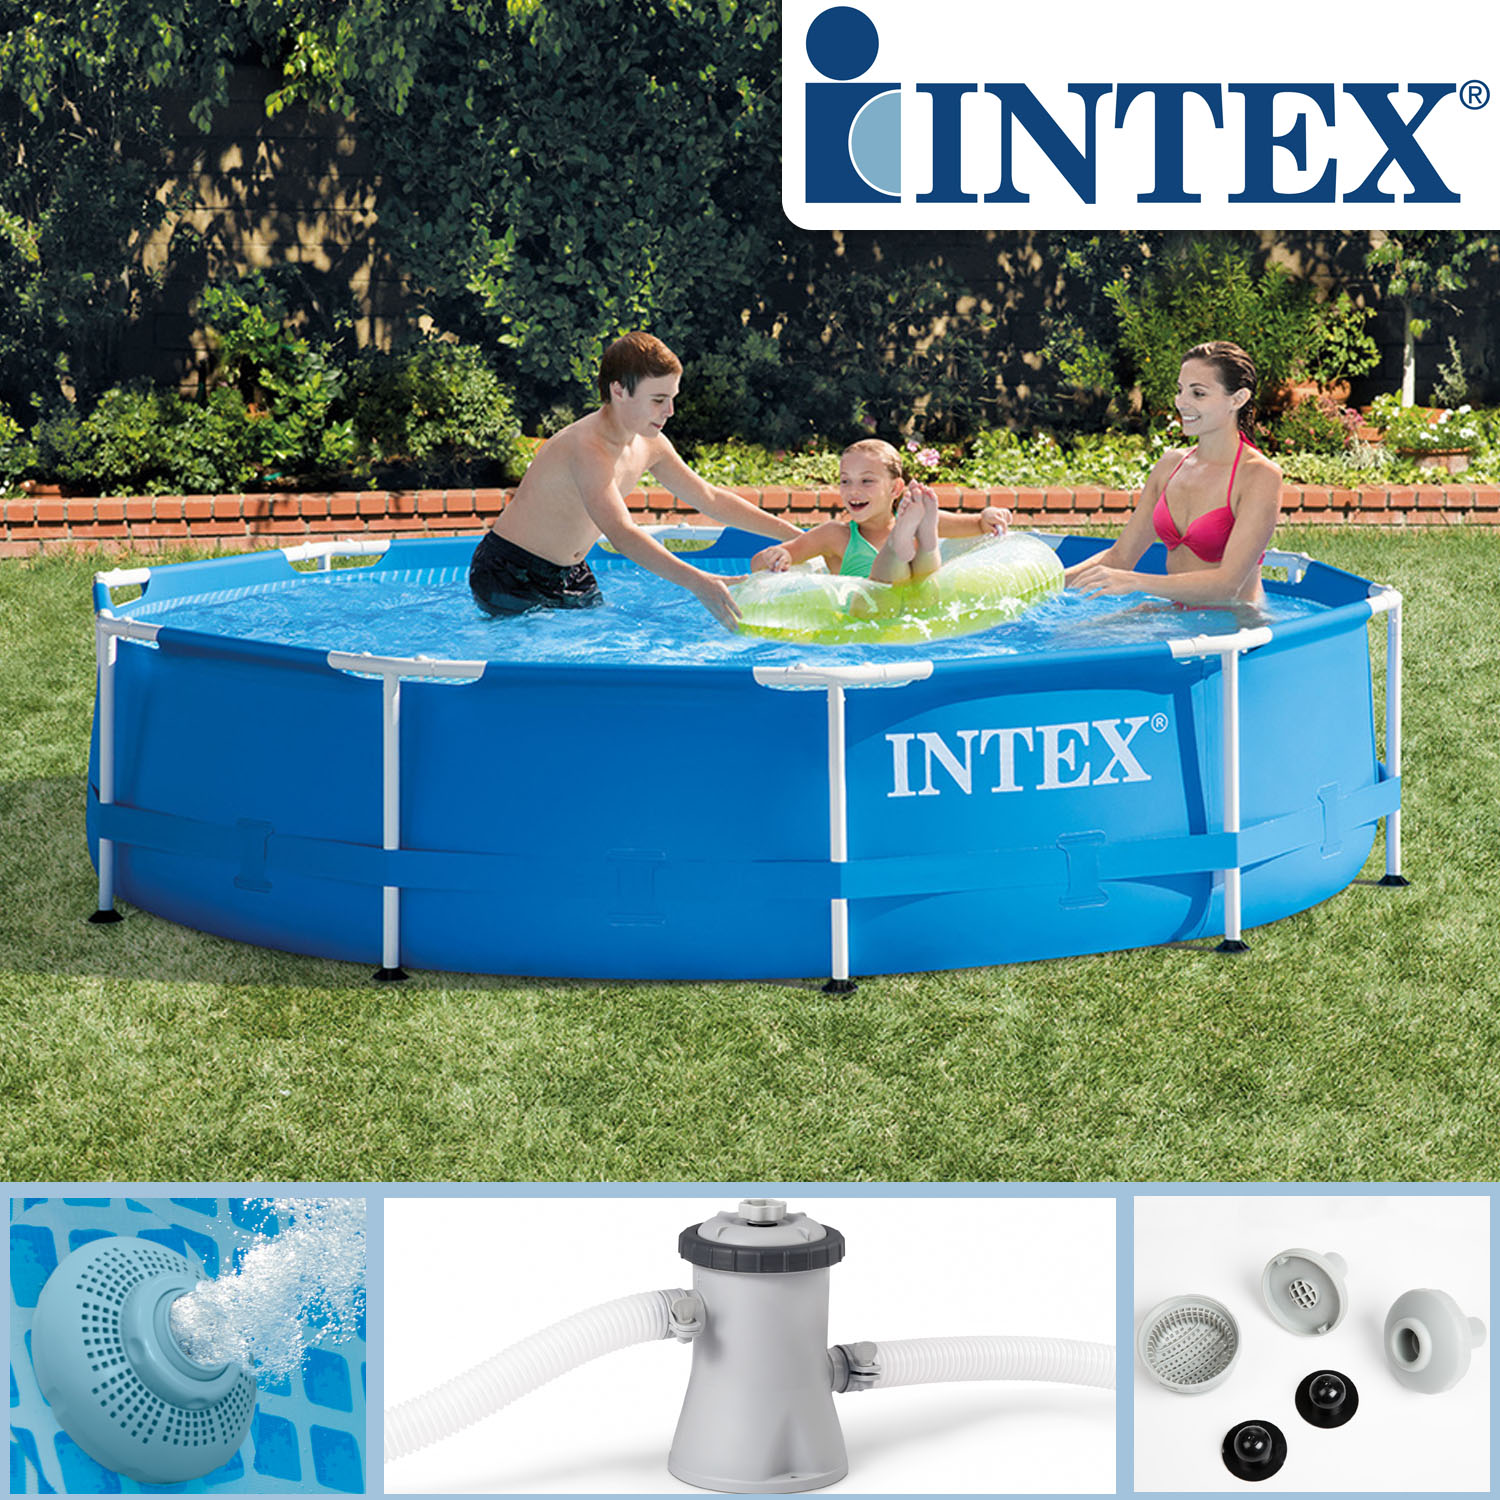 Intex 305x76 swimming pool frame stahlwandbecken for Pool aufblasbar mit pumpe